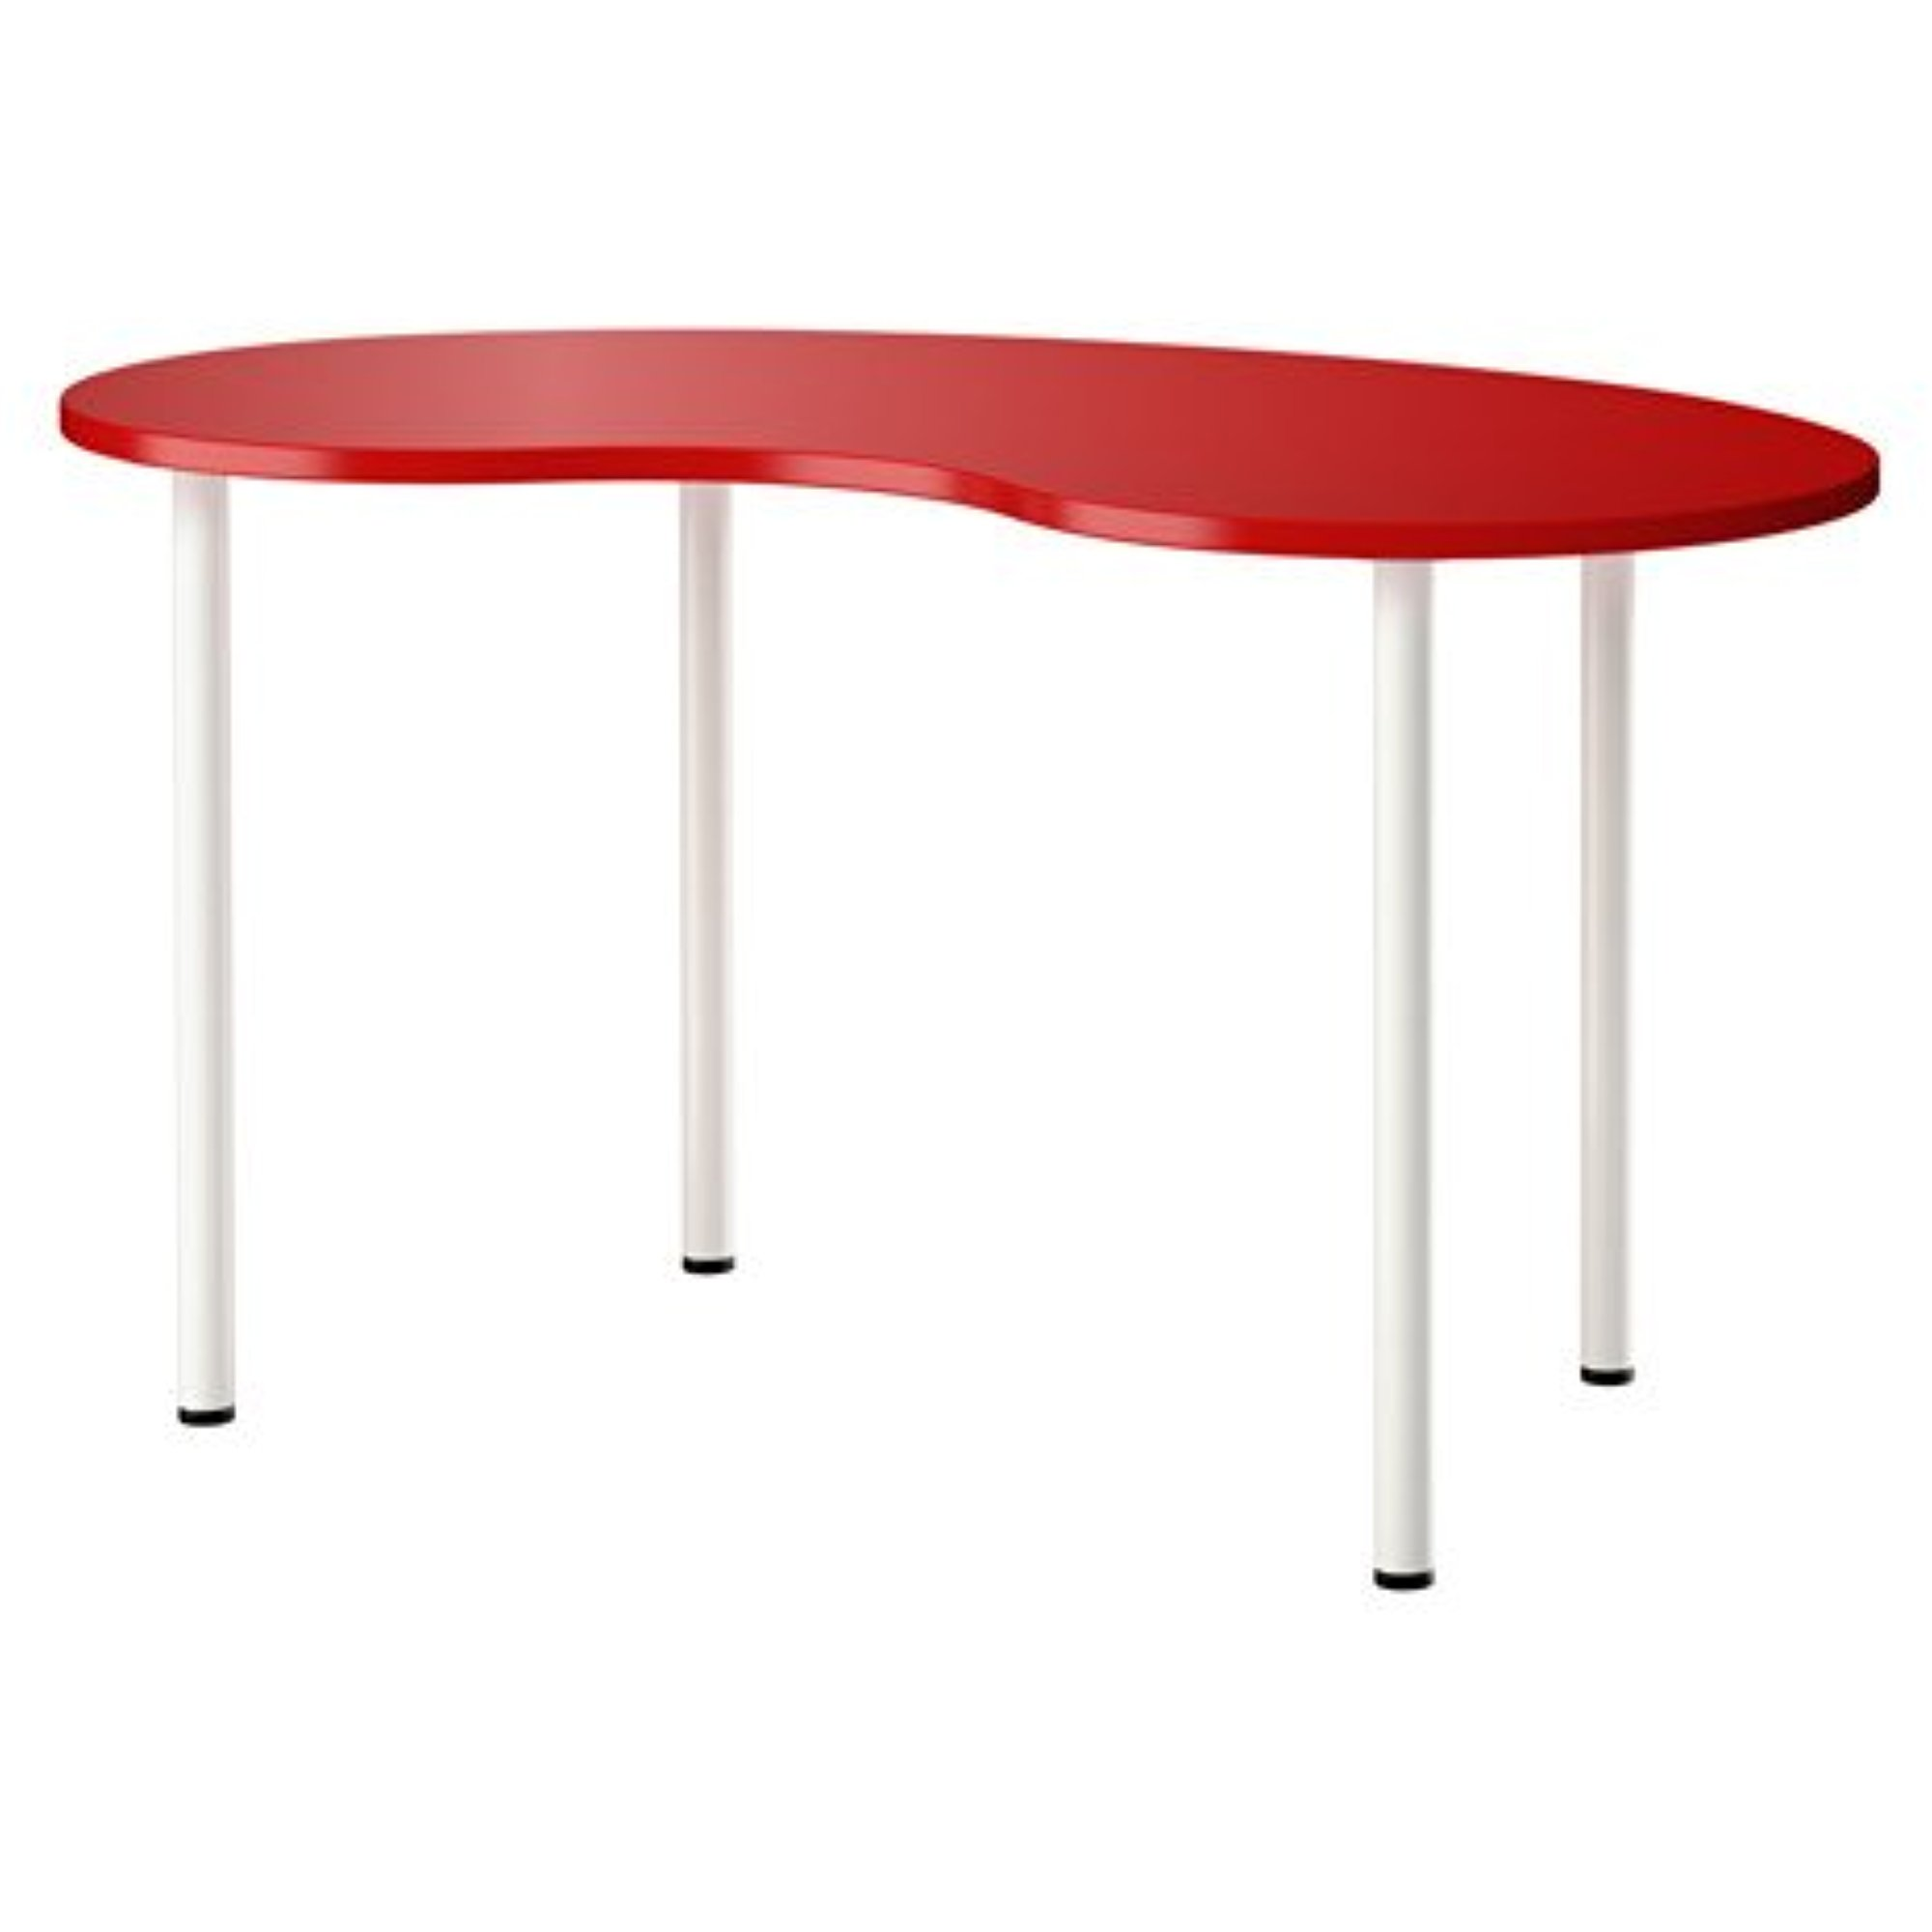 Ikea Computer Table, cashew shape red, white 55 1/8x29 1/...